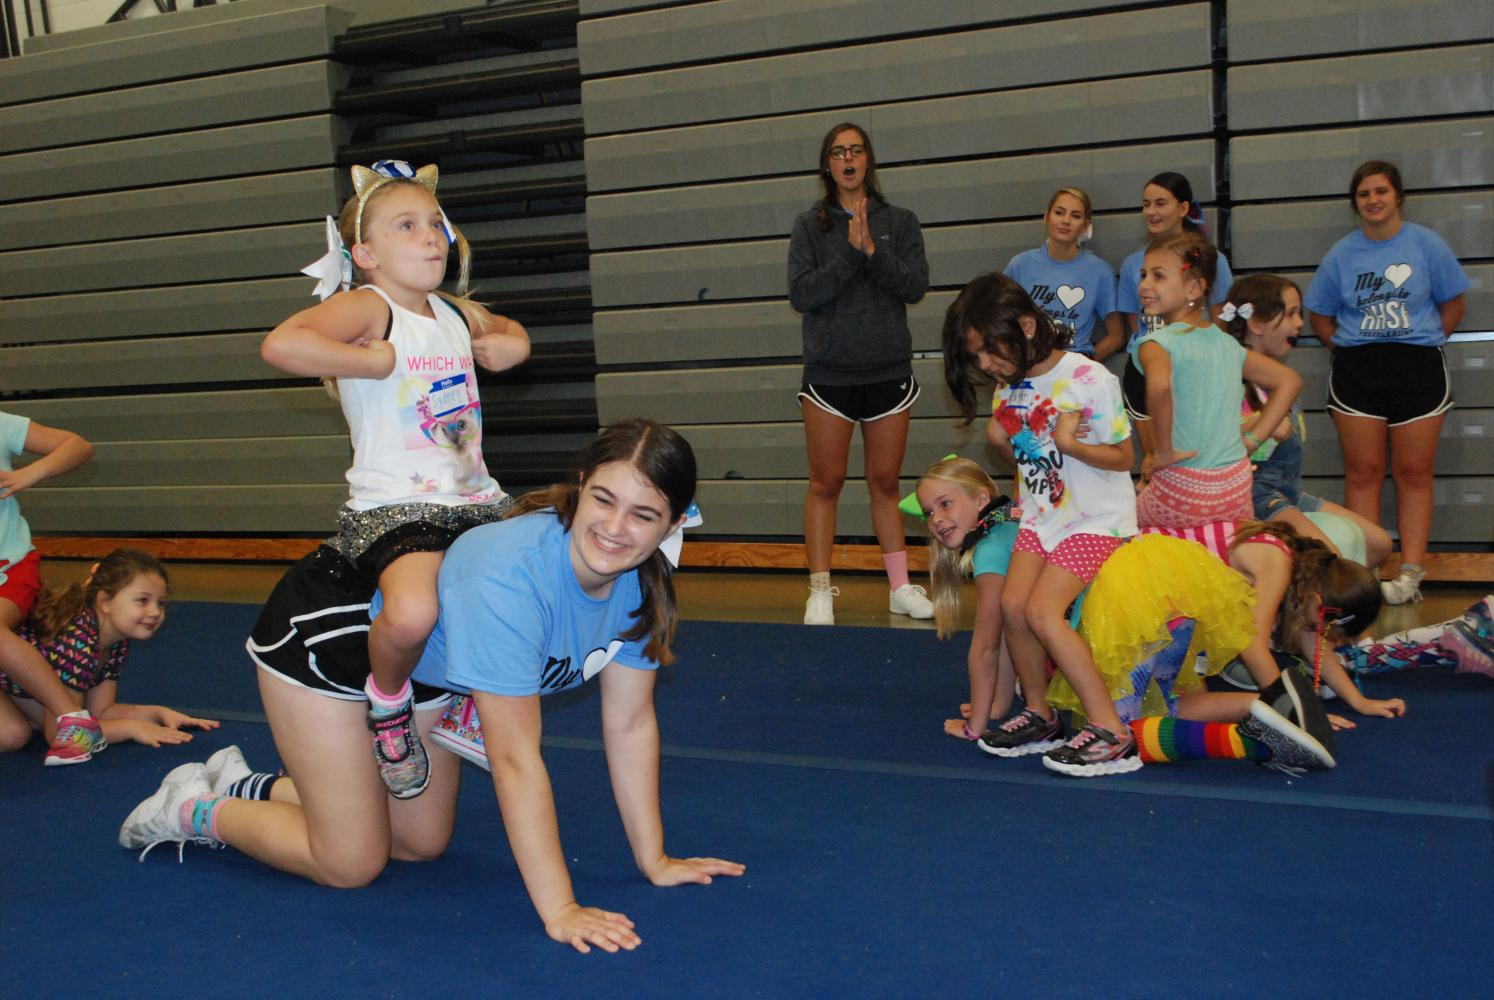 Sophomore Annie Tromboli hangs out with some young cheerleaders during break. She volunteered this summer at Hagerty's Youth Cheer Camp.